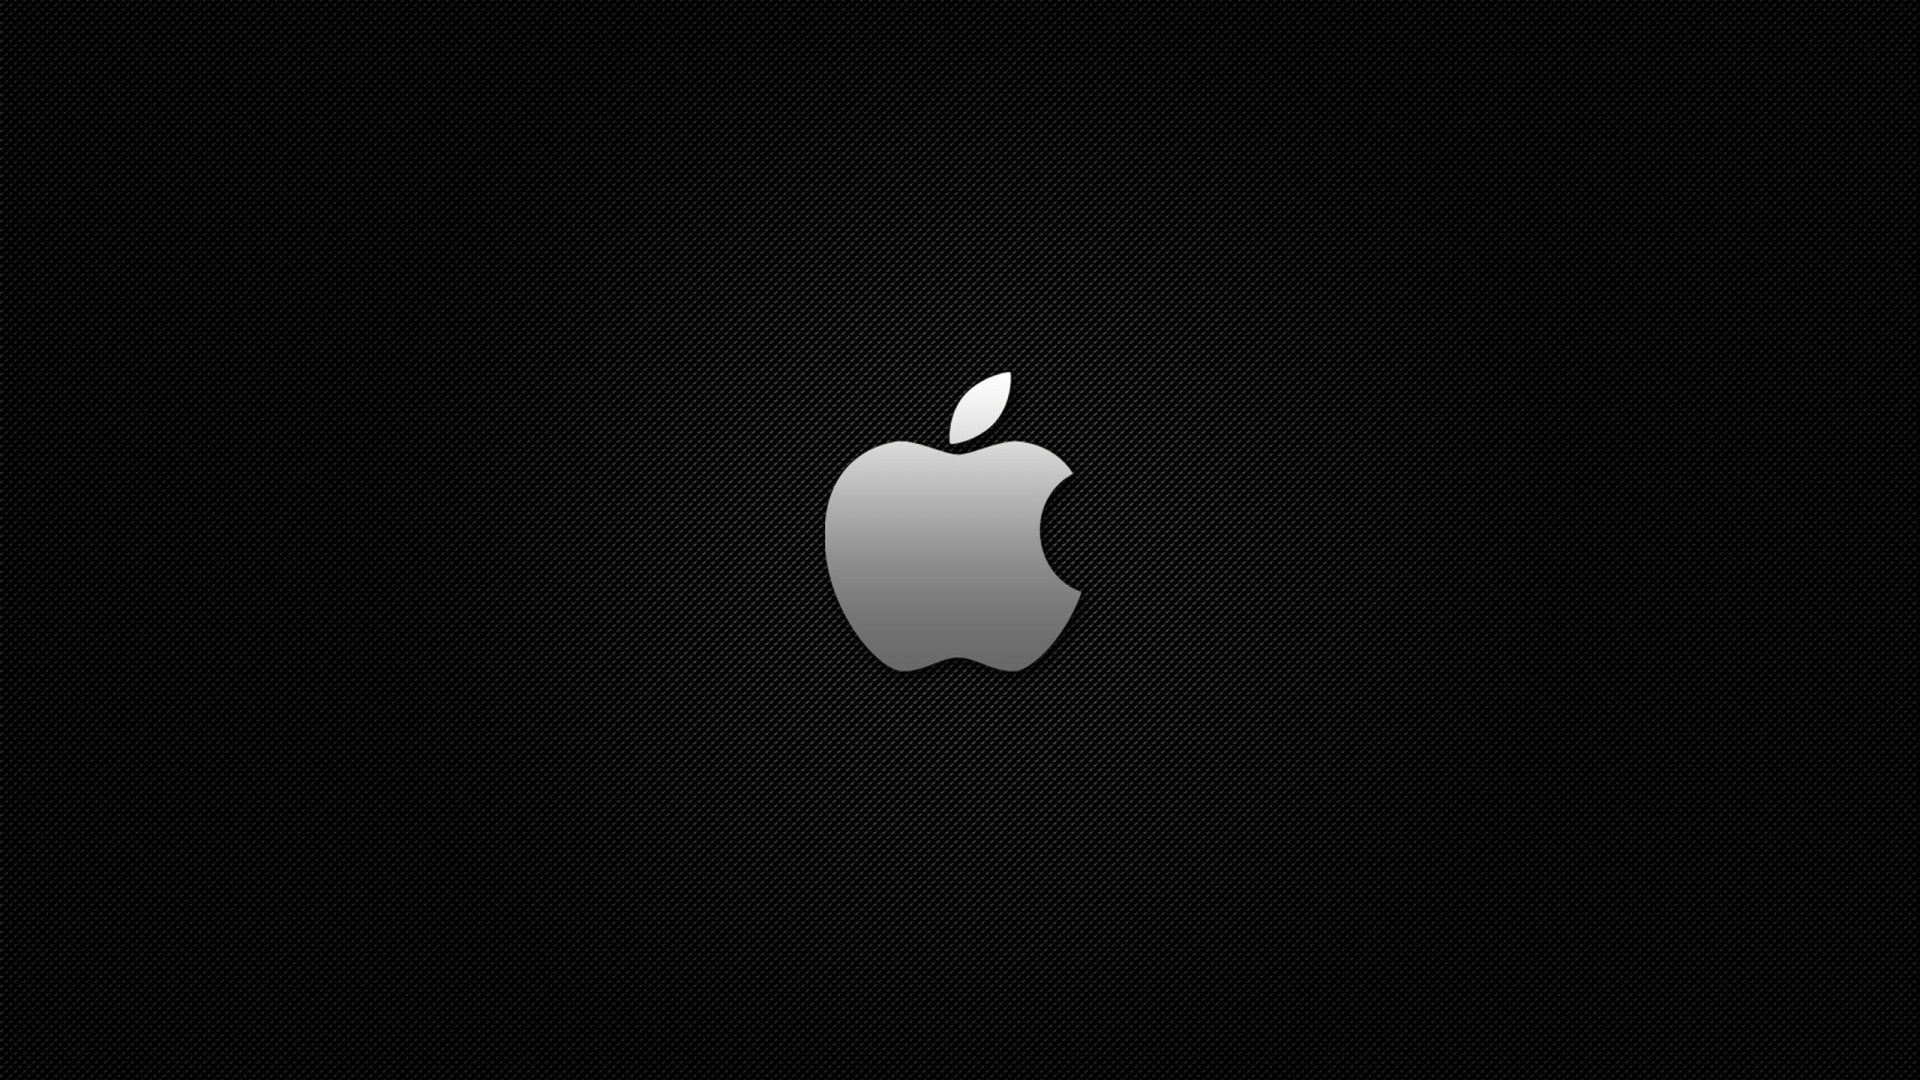 Black apple logo wallpapers hd wallpaper 460 in 2019 for Immagini apple hd